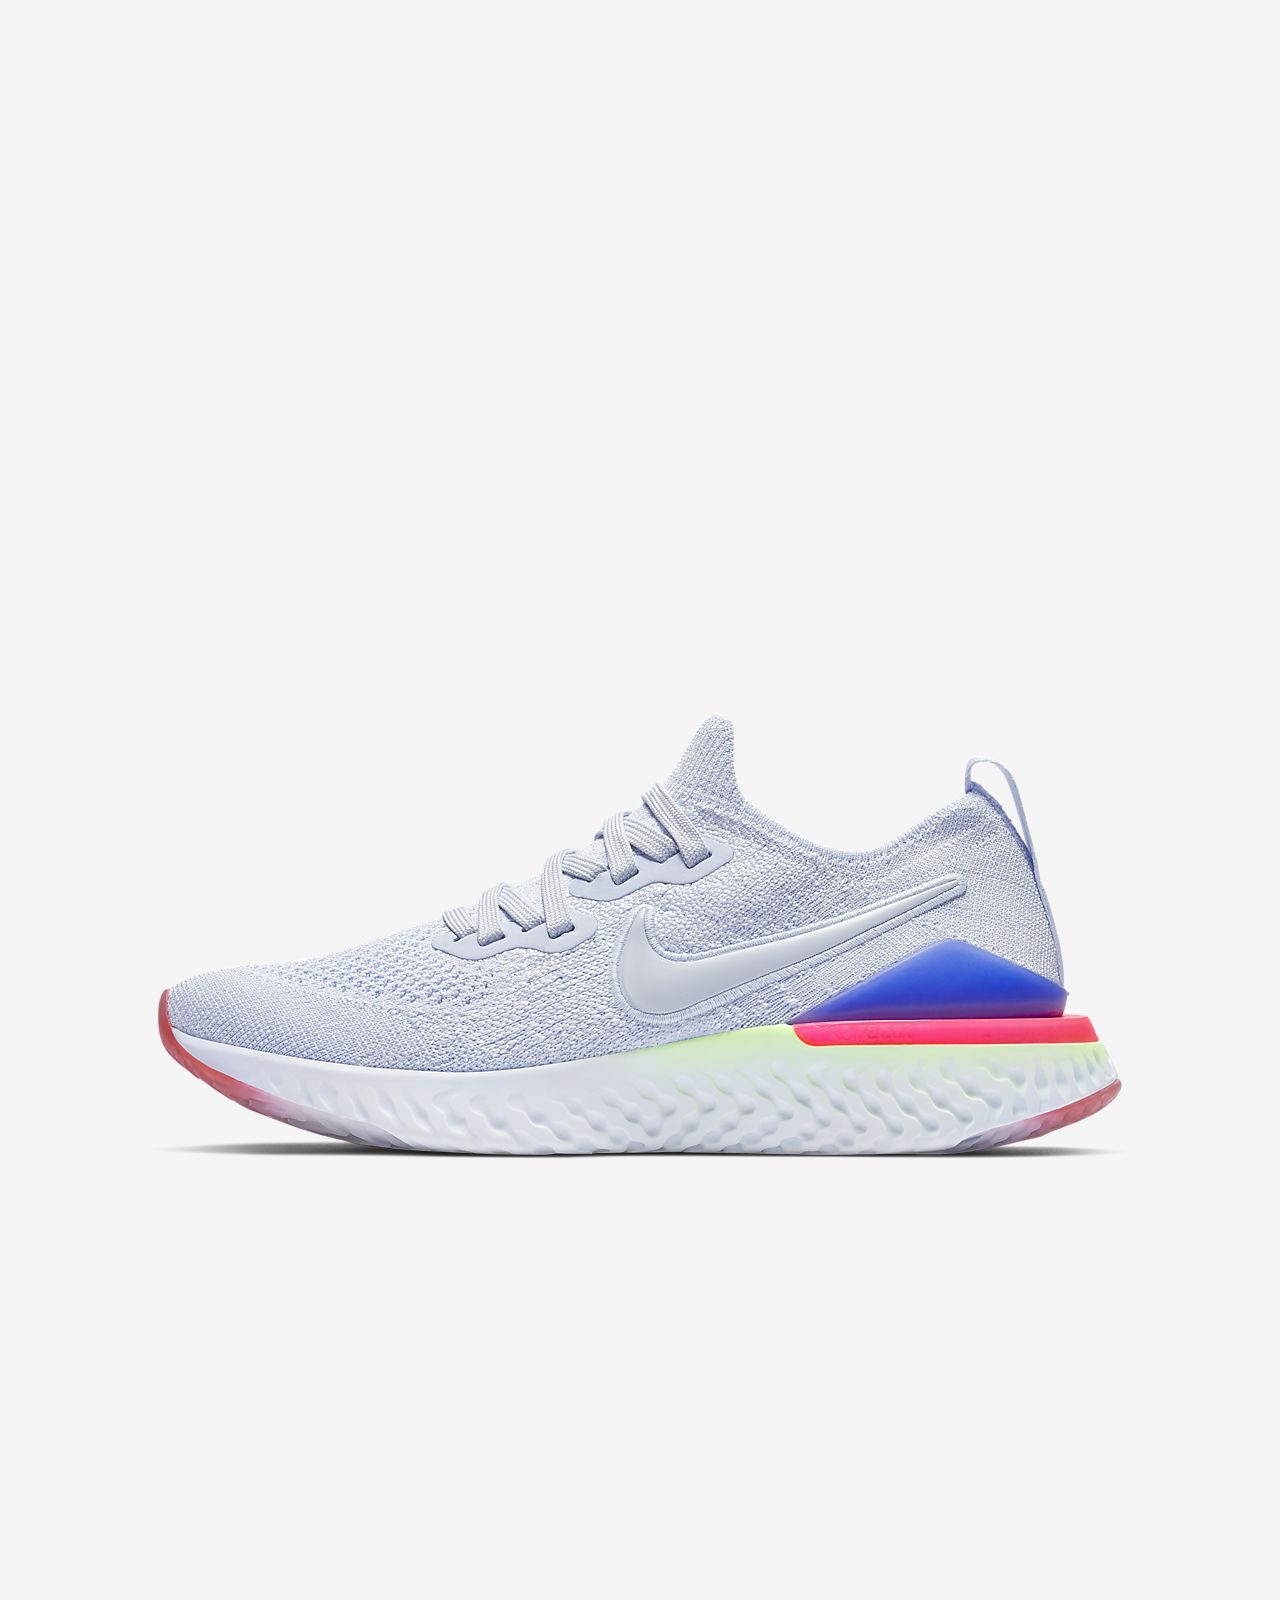 c744bdb9d63 Nike Epic React Flyknit 2 Big Kids  Running Shoe. Nike.com